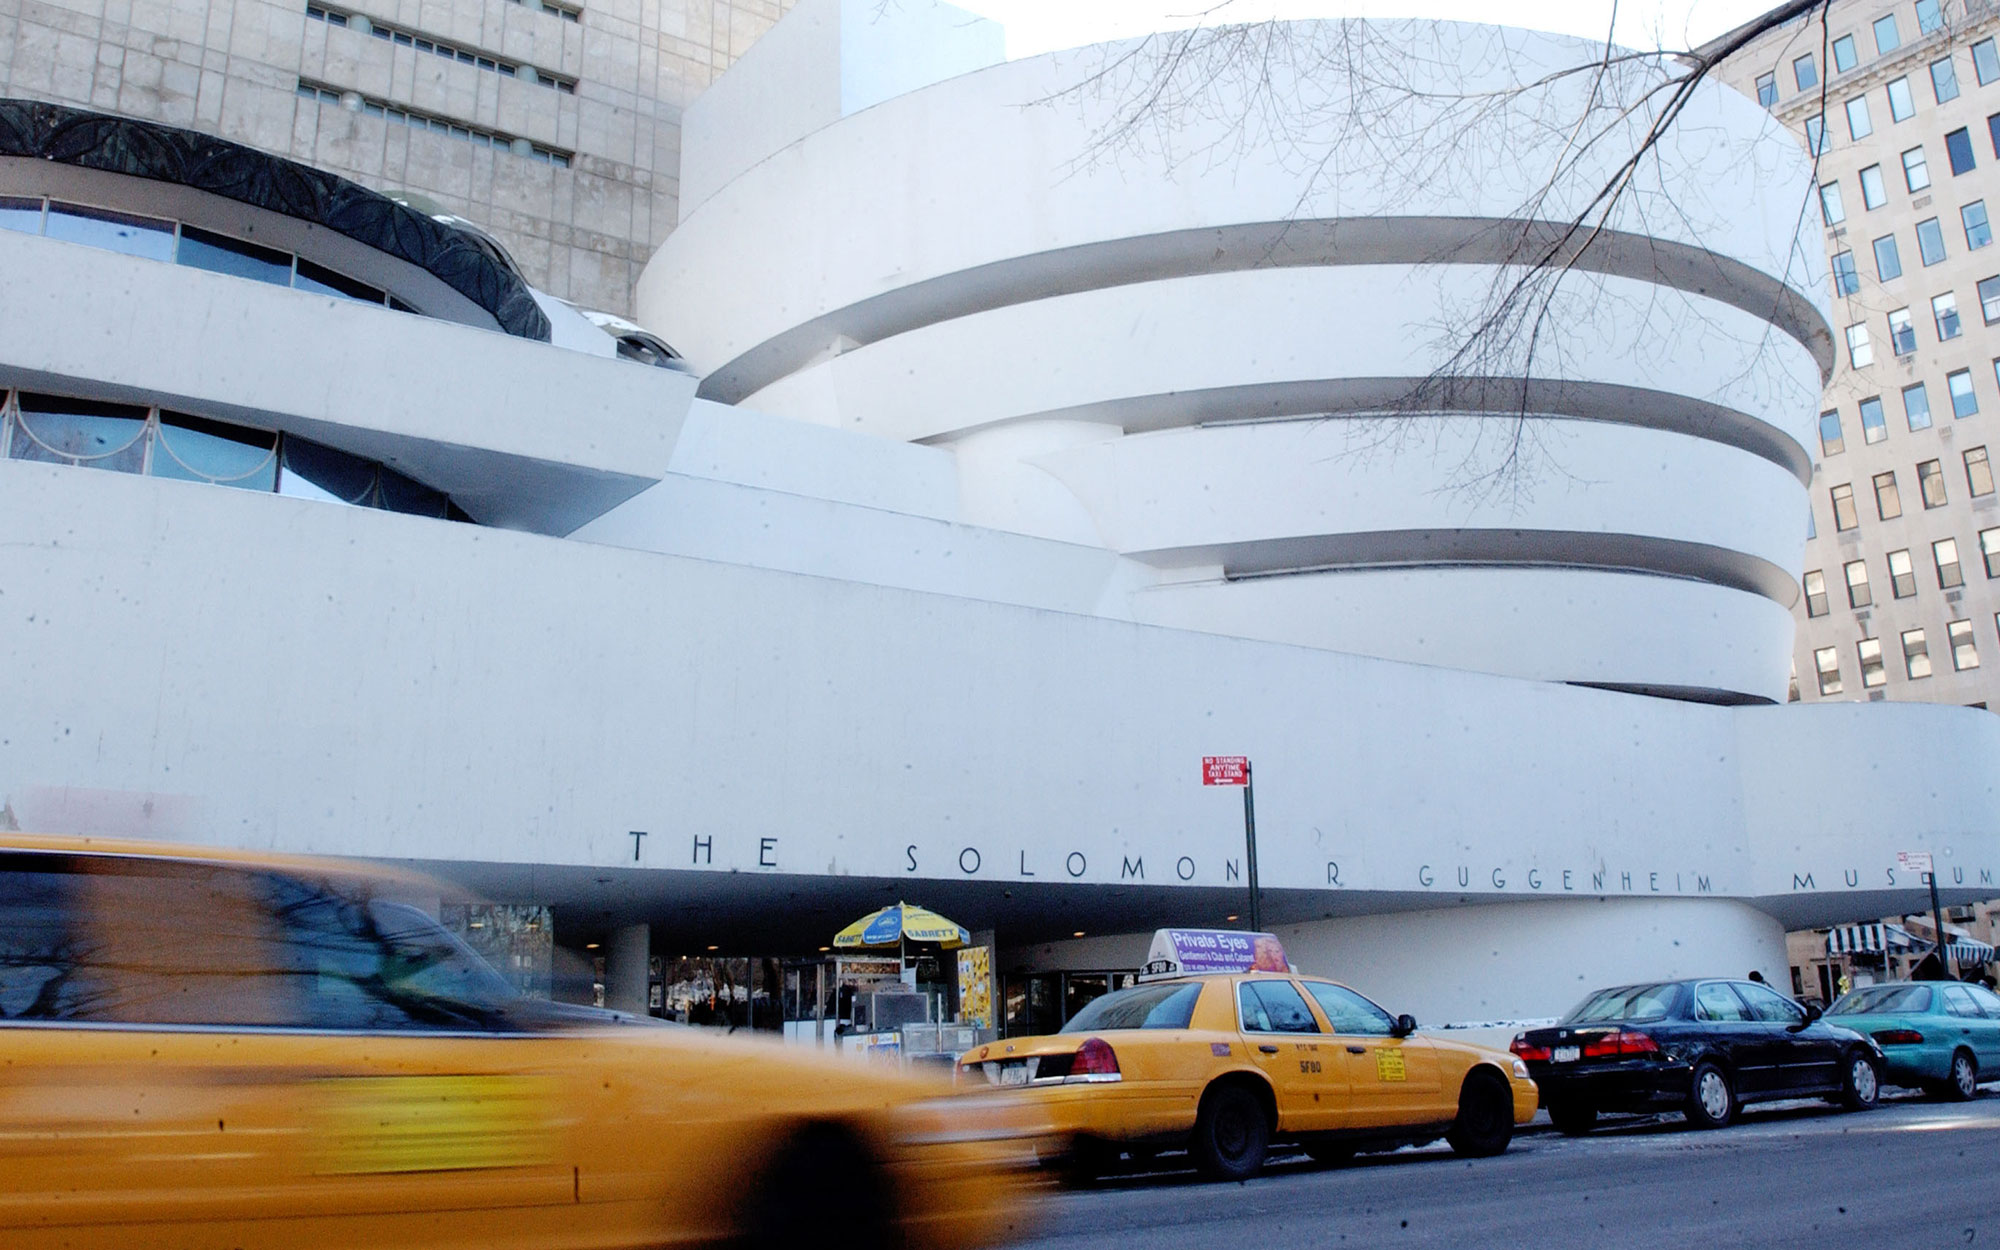 NEW YORK - JANUARY 21:  Traffic moves past the front of the Solomon R. Guggenheim Museum January 21, 2004 in New York City. Designed by architect Frank Lloyd Wright, the Guggenheim Museum was completed in 1959.  (Photo by Stephen Chernin/Getty Images)